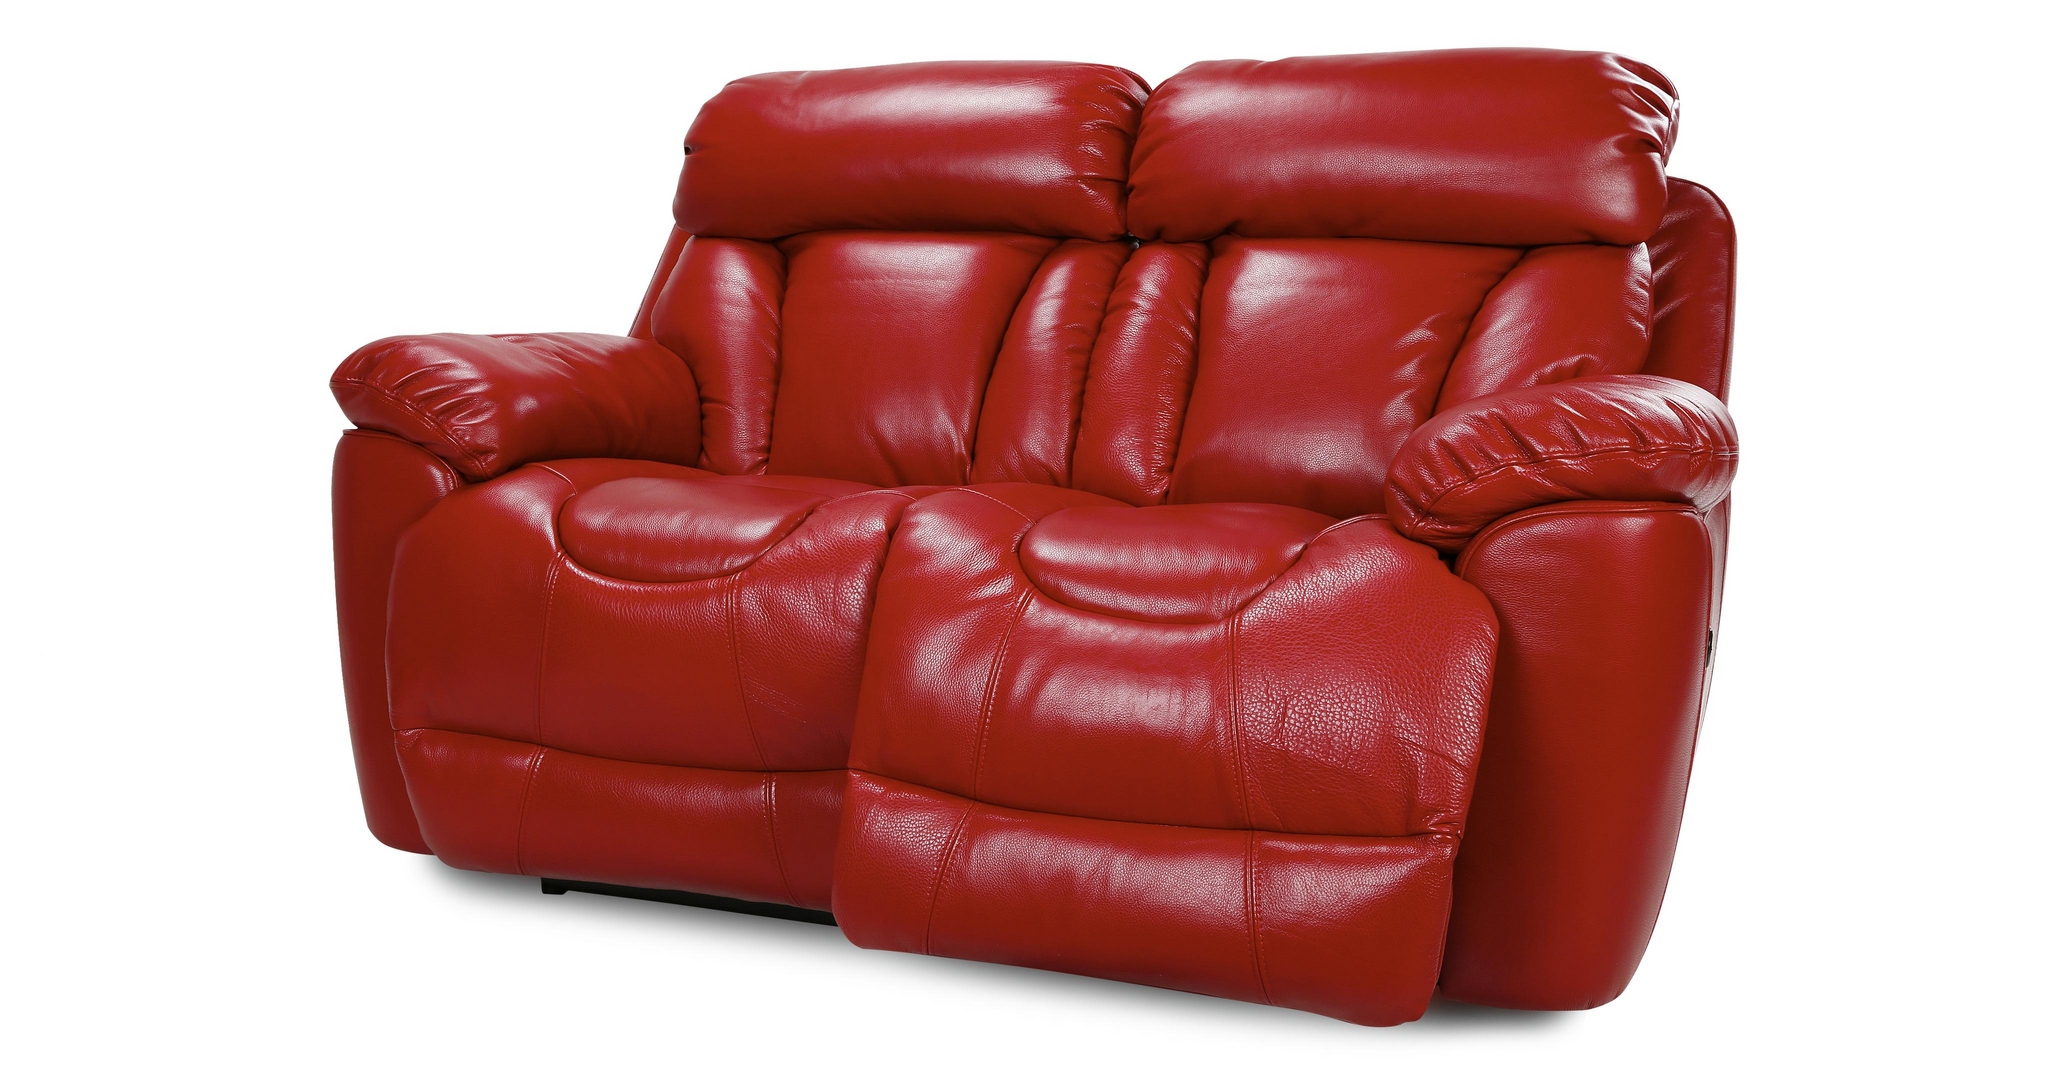 Dfs Supreme Settee 2 Seater Red Leather Power Recliner Sofa Ebay